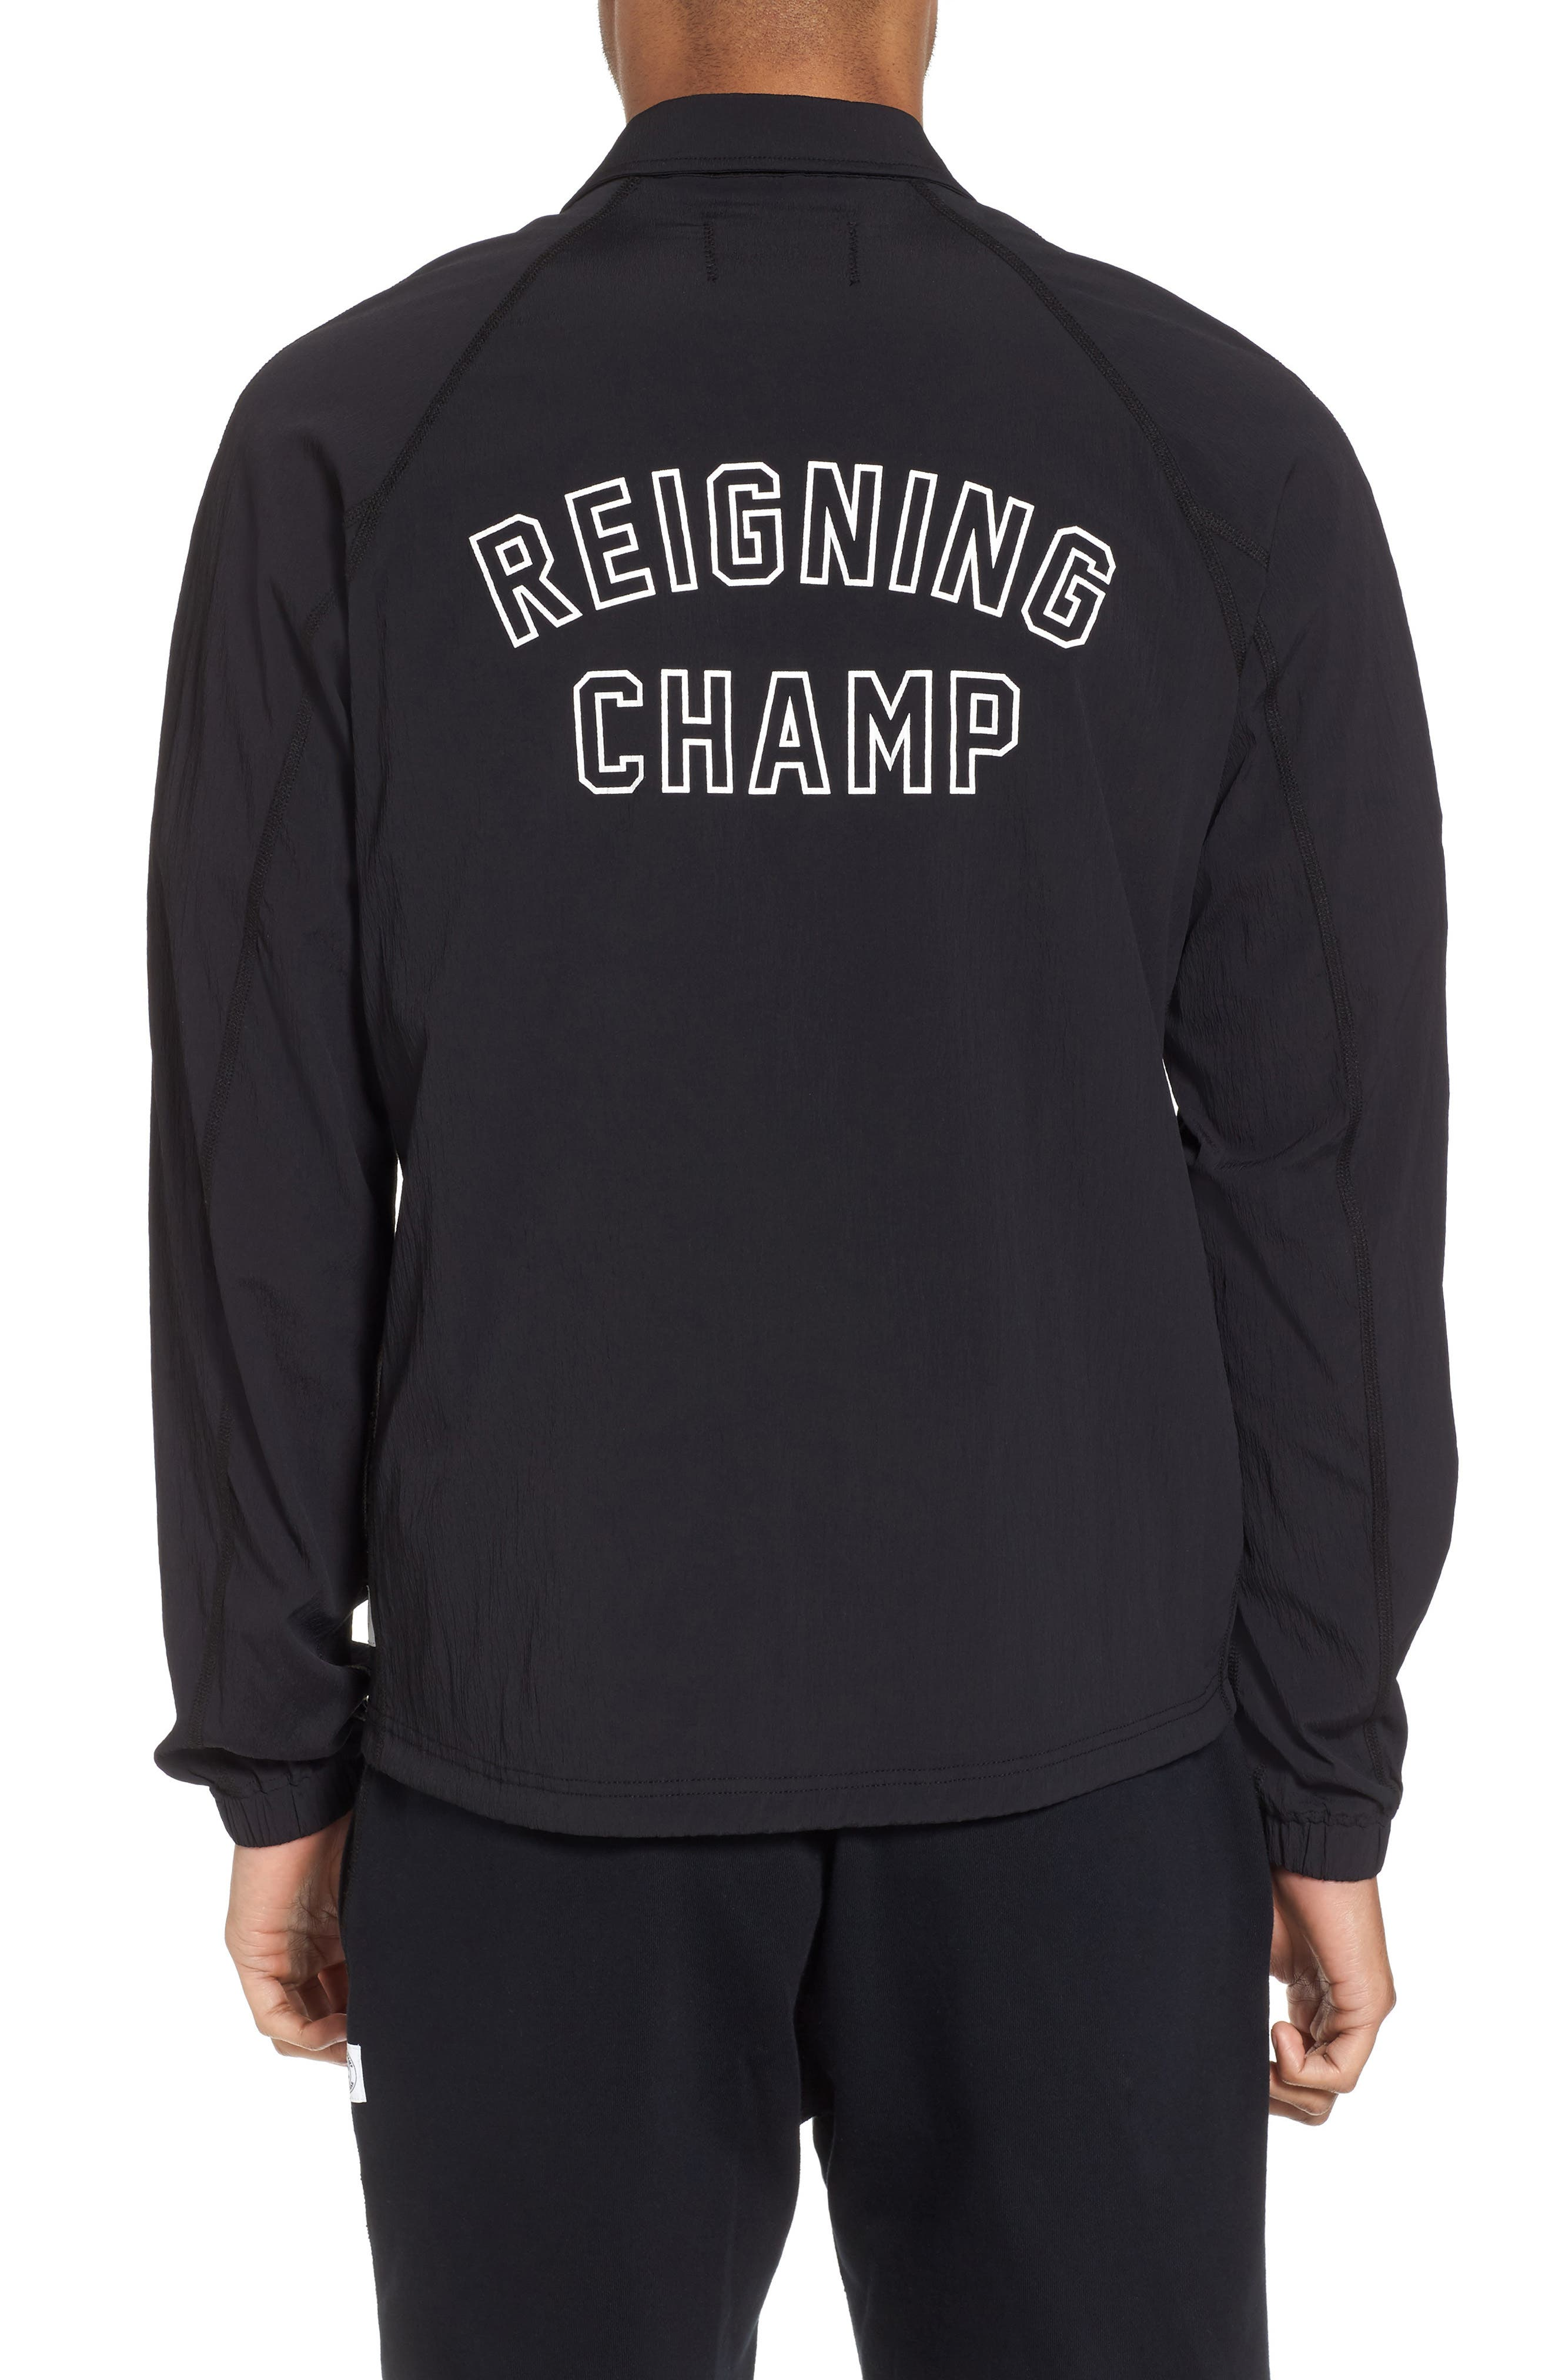 Coach's Jacket,                             Alternate thumbnail 2, color,                             Black